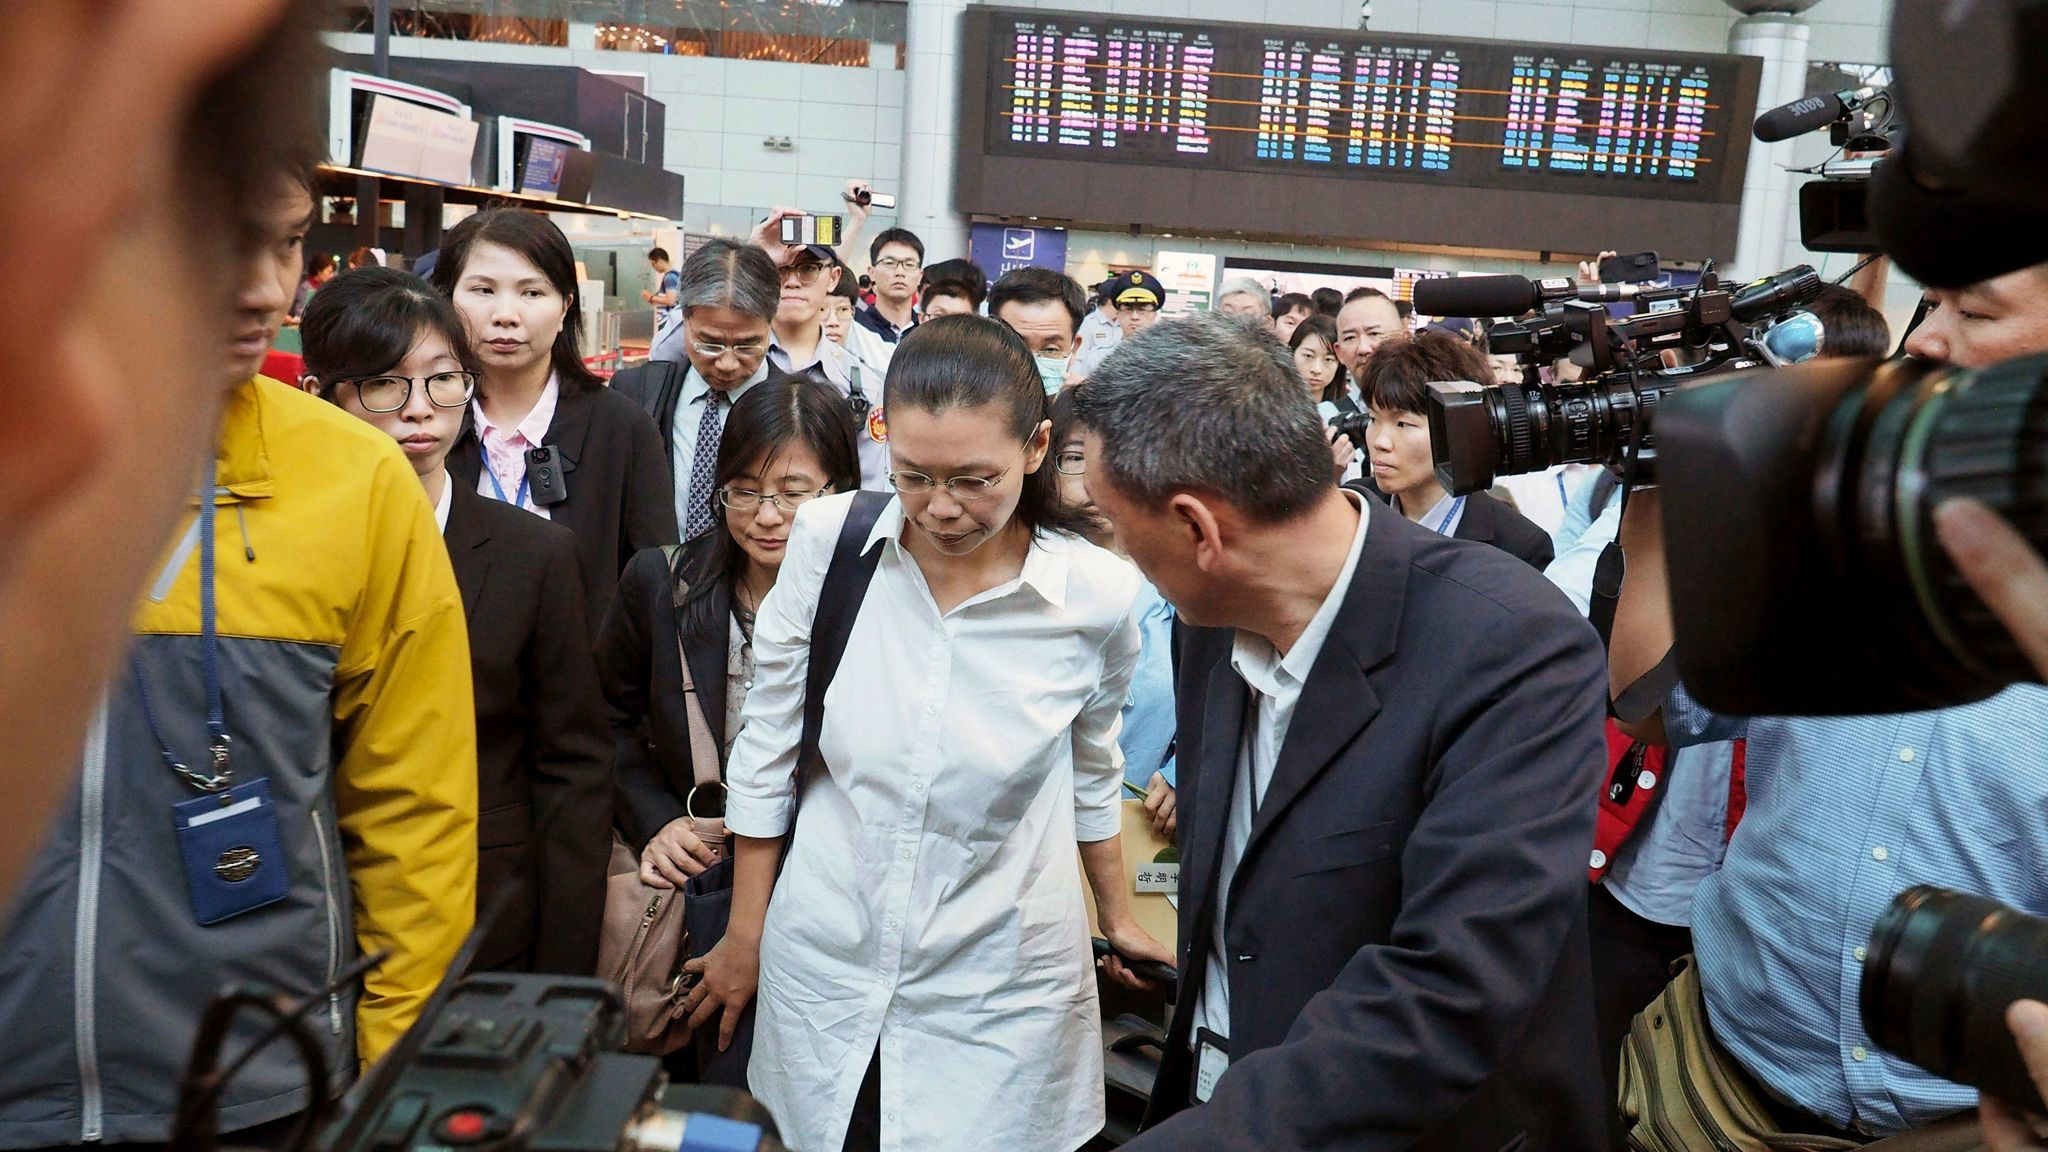 Li Ching-yu, center, wife of Taiwanese human rights activist Li Ming-che, who is being detained in China, leaves the Air China check-in counter at the Taoyuan International Airport in northern Taiwan on April 10, 2017.